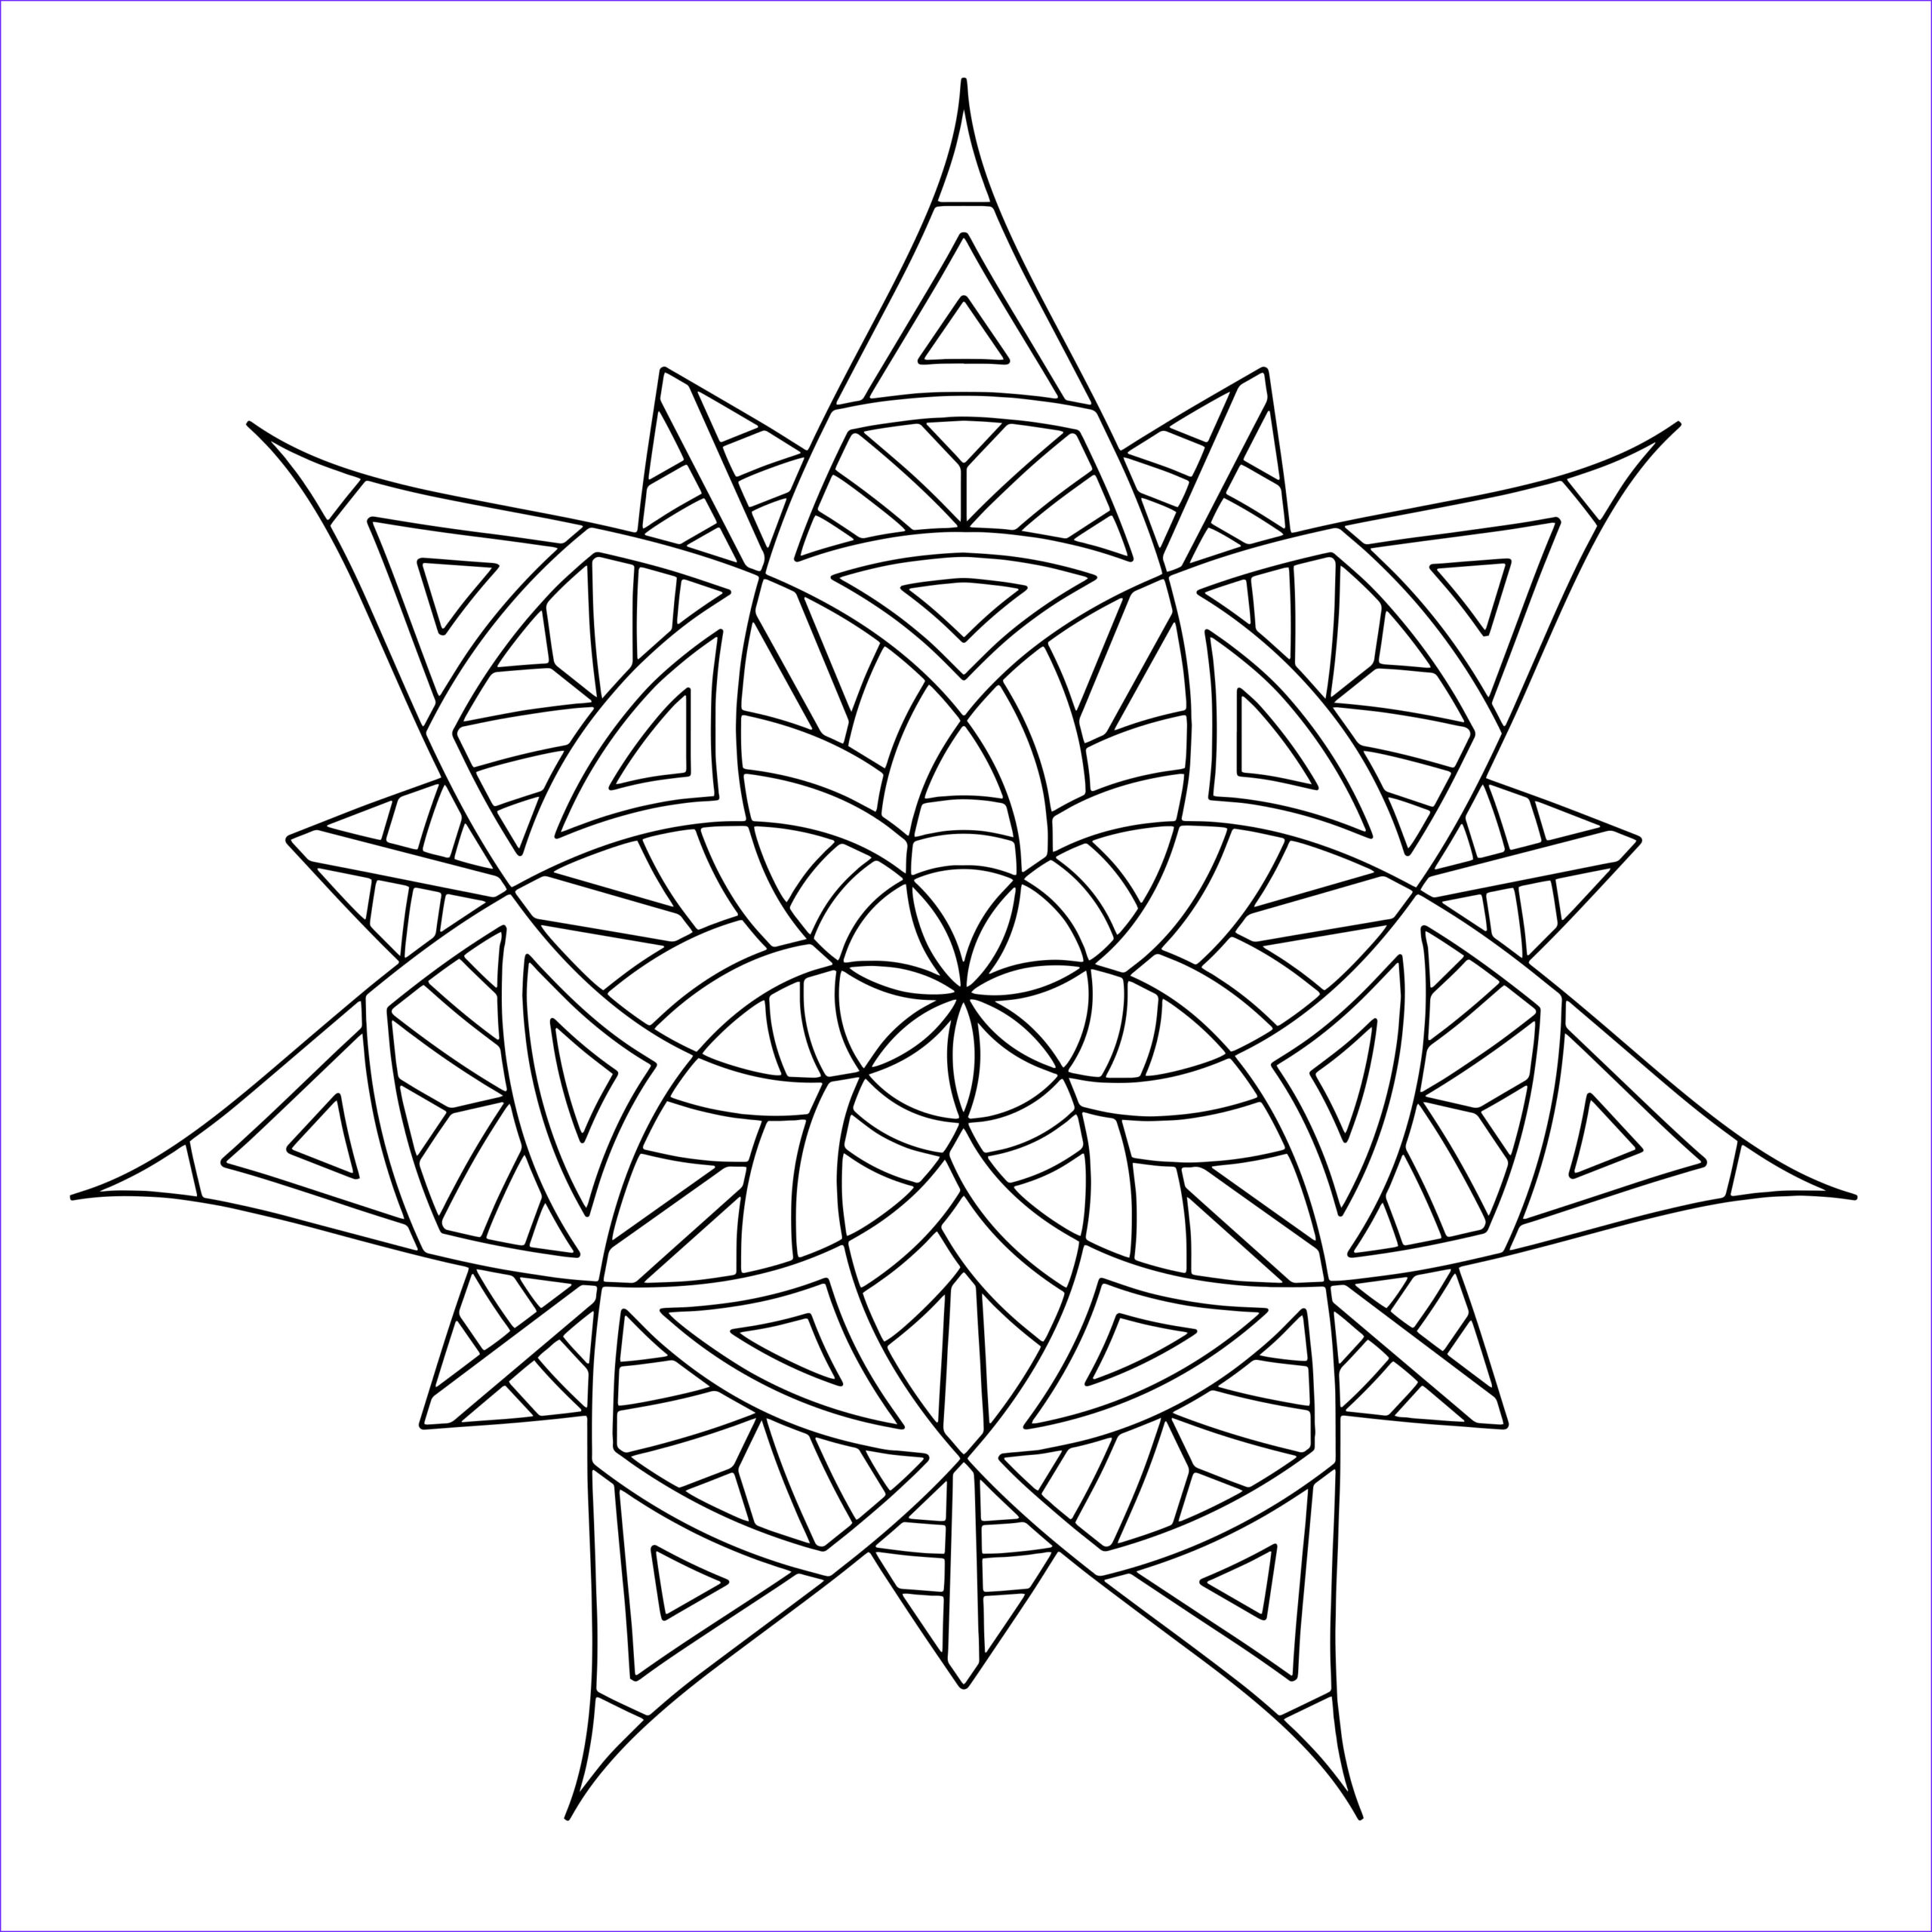 Free Coloring Pages for Adults to Print Elegant Photos Free Printable Geometric Coloring Pages for Adults